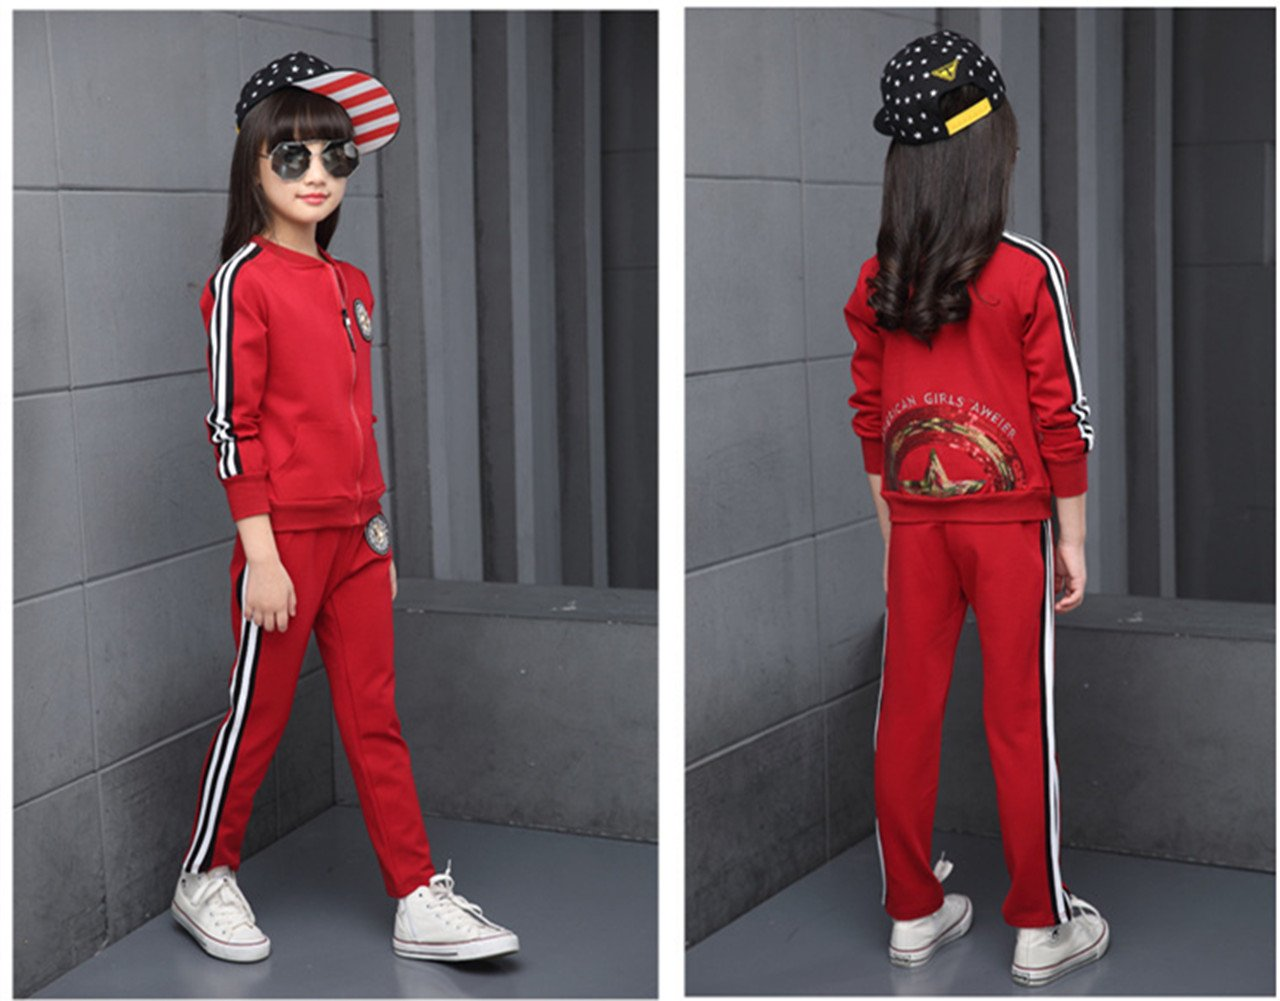 FTSUCQ Girls Zip Front Sports Tracksuits Striped Shirt Jacket Coat + Pants,Red 140 by FTSUCQ (Image #3)